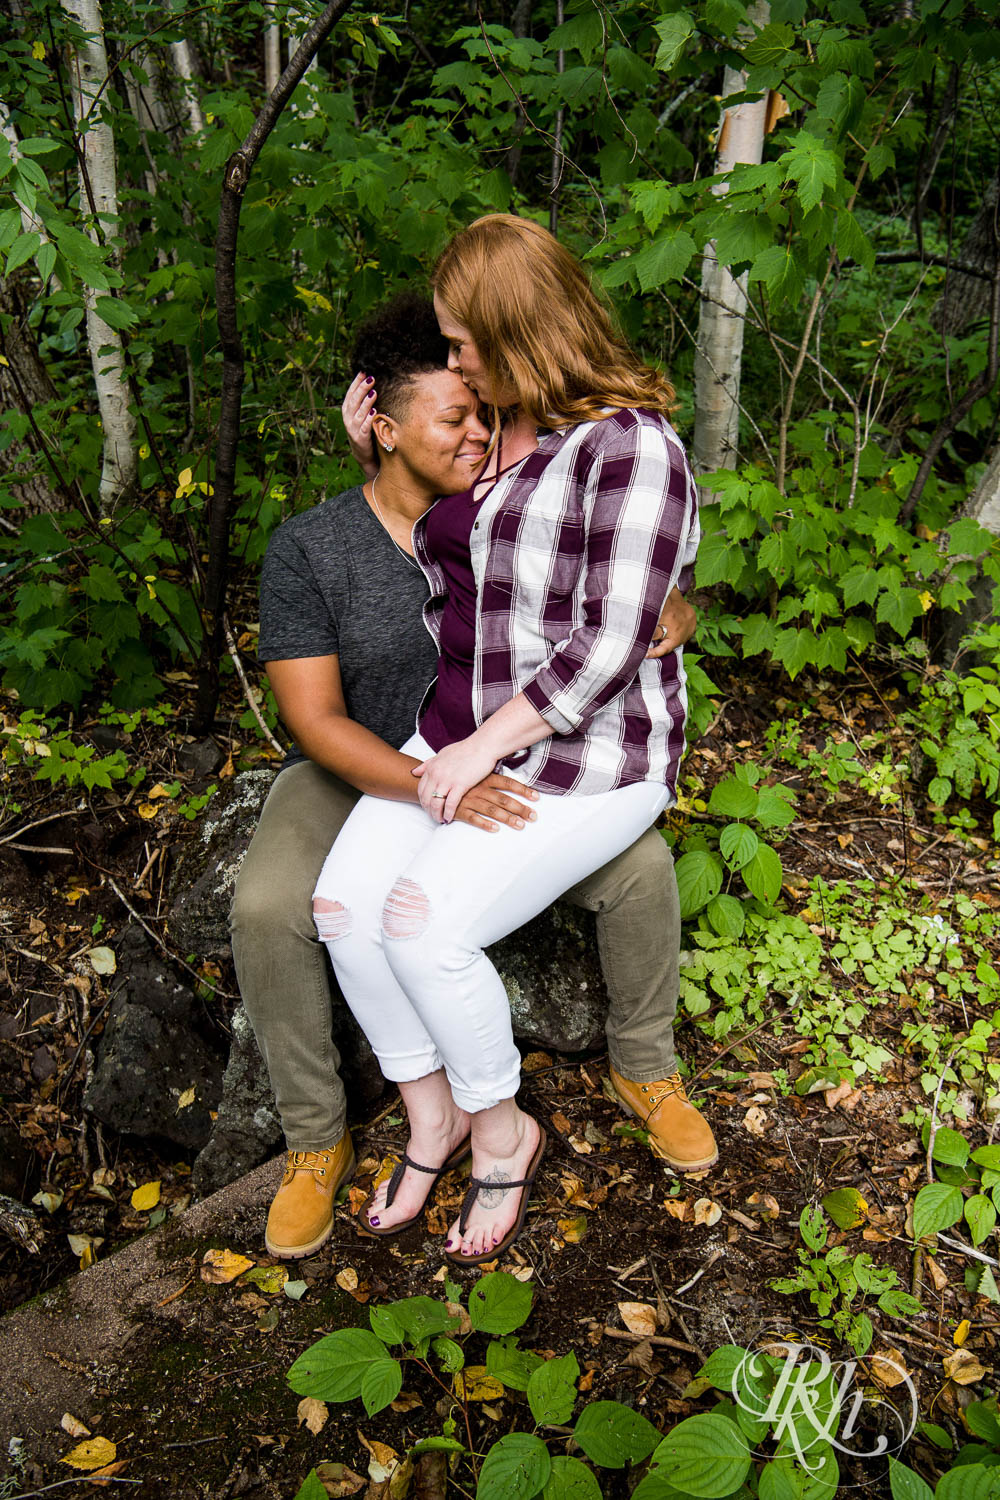 Kasey & Monique - Minnesota LGBTQ Engagement Photography - North Shore - RKH Images (13 of 15).jpg